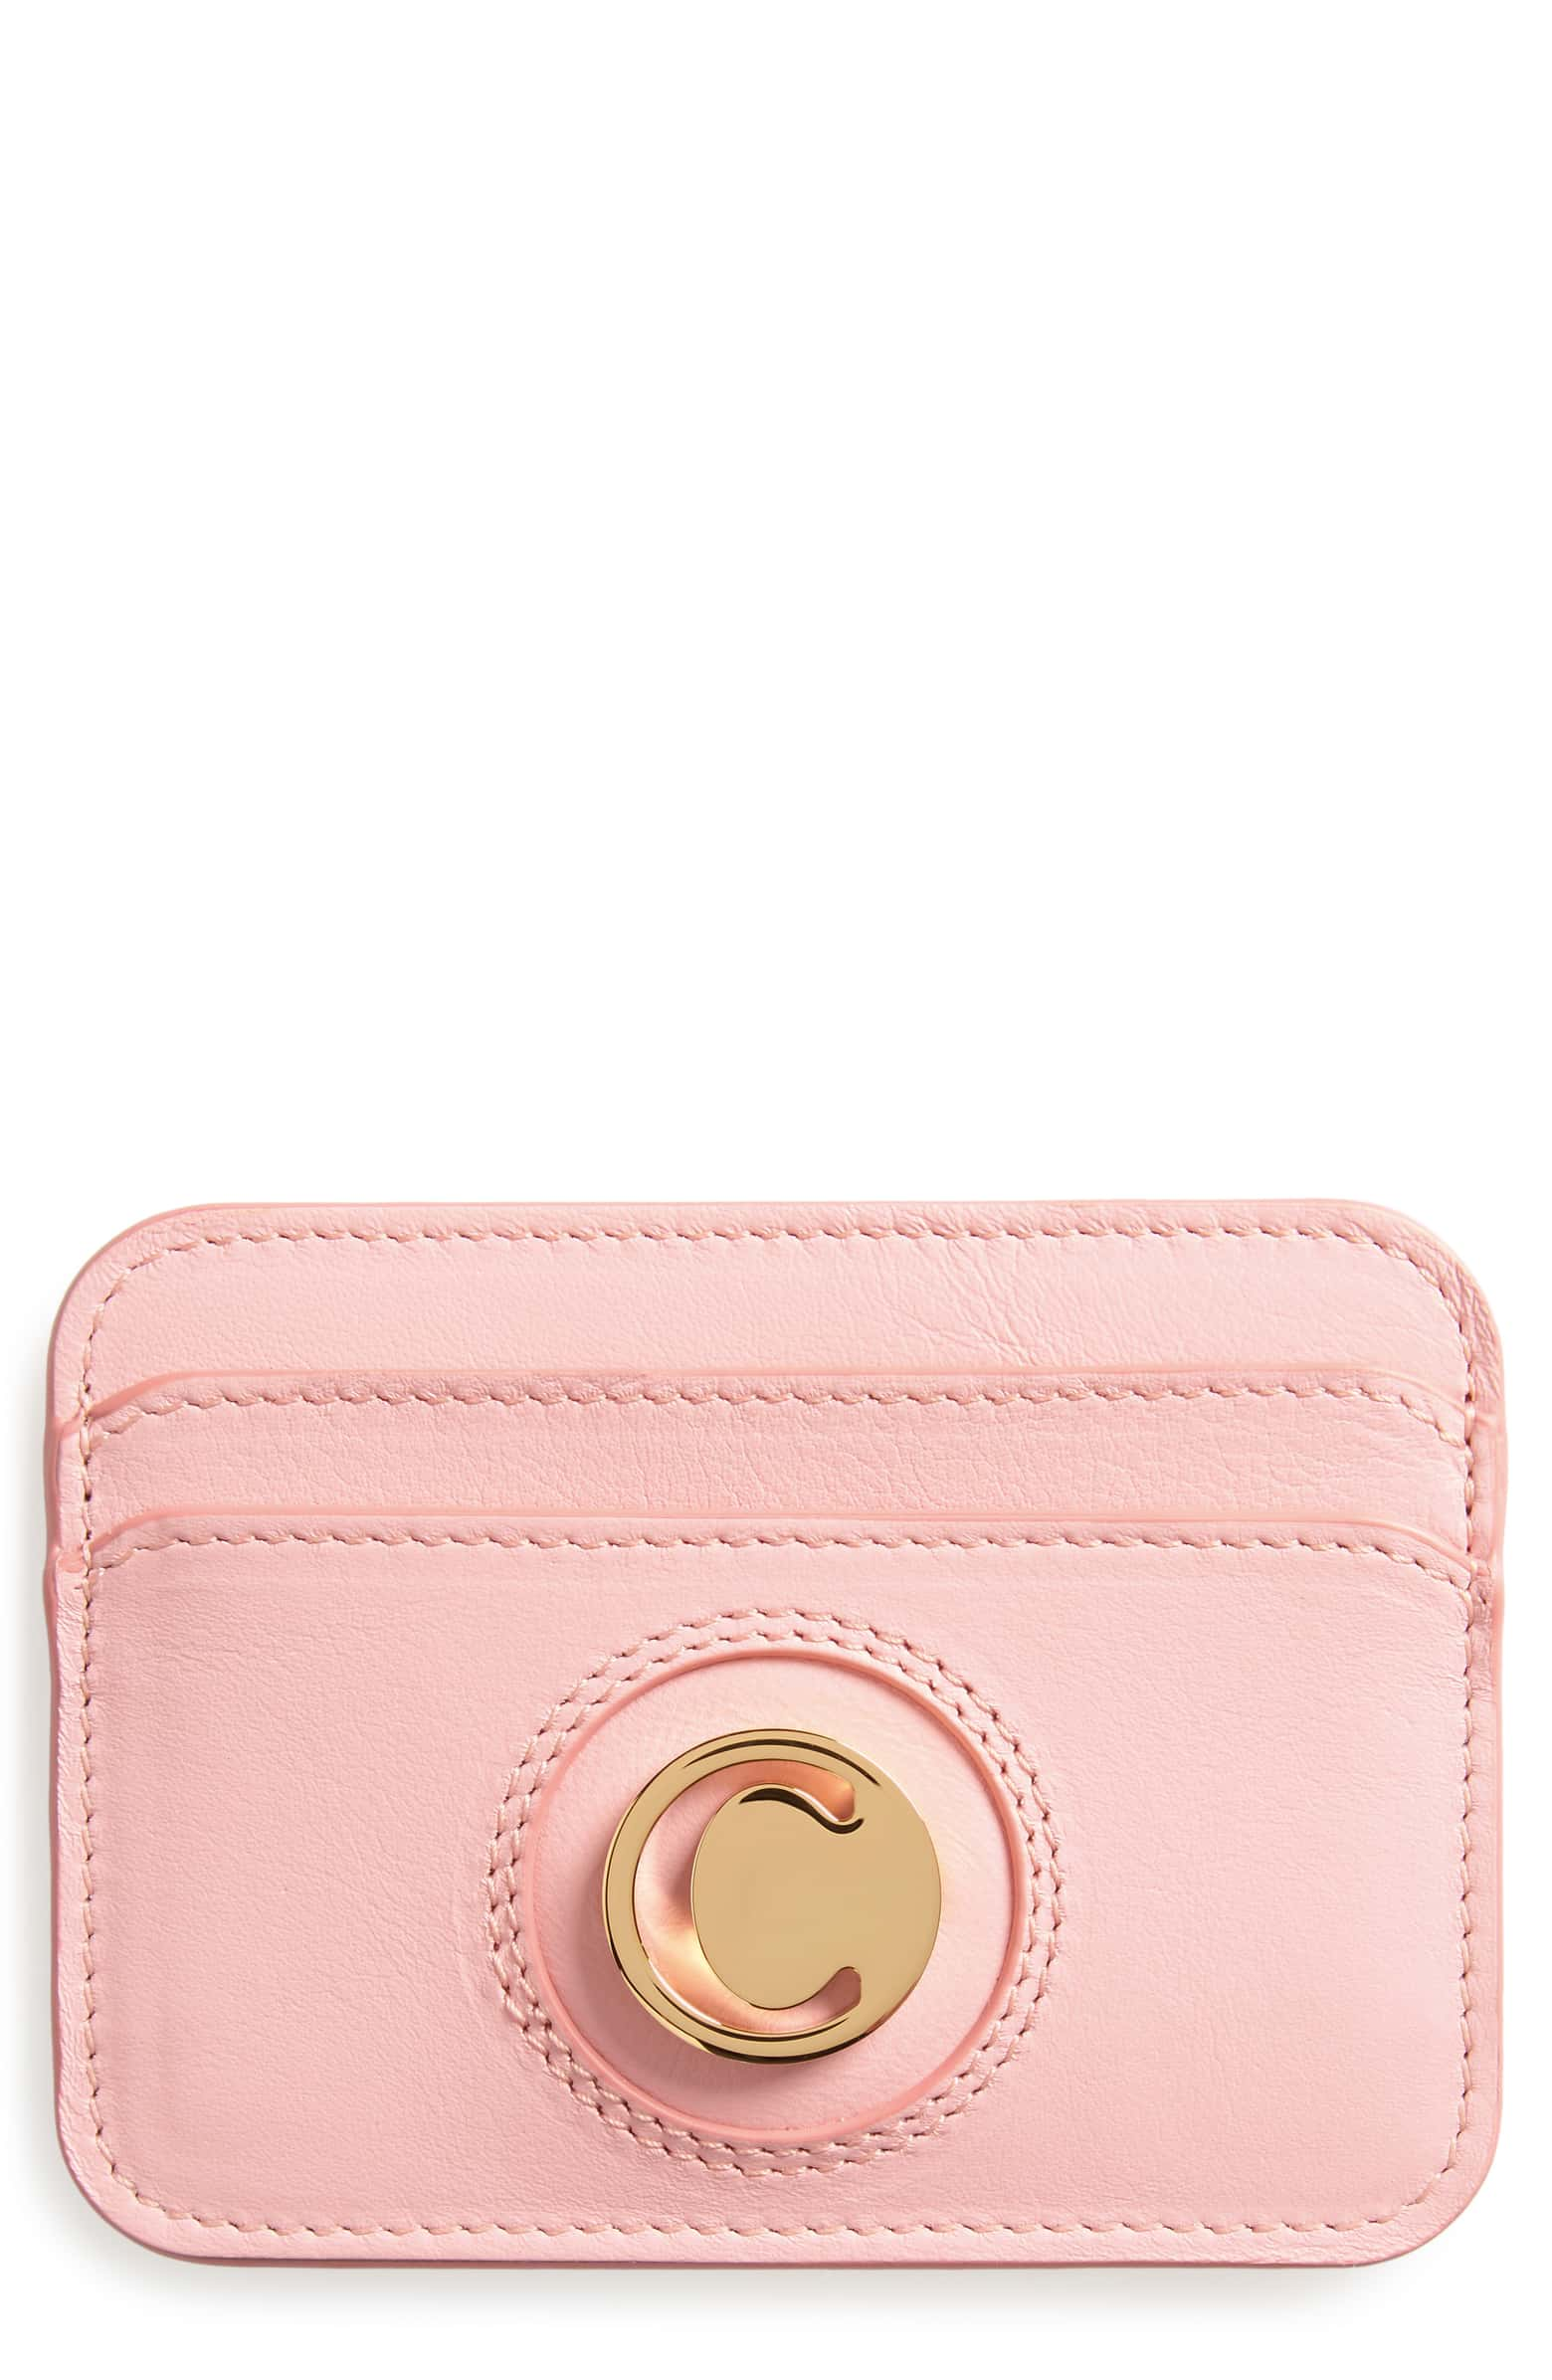 chloe leather card holder.jpg